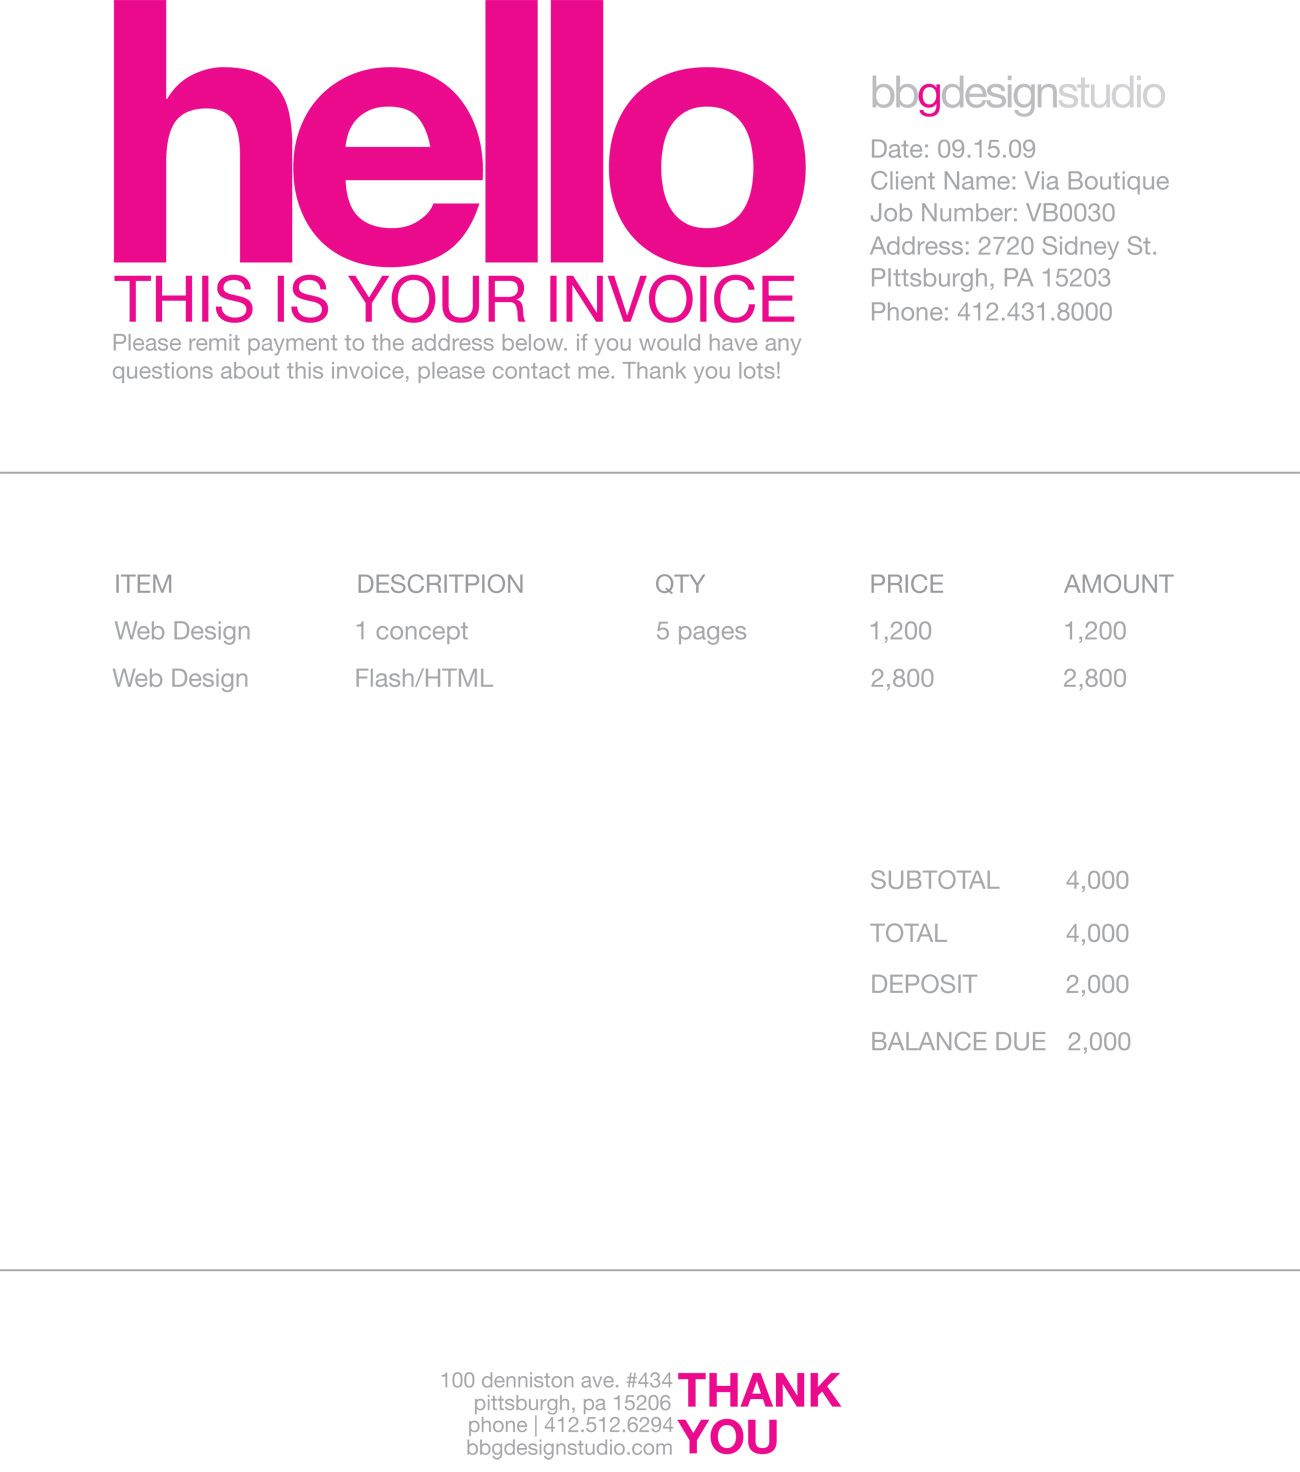 Ultrablogus  Inspiring  Images About Invoice Design On Pinterest With Likable Invoice Template Excel Download Free Besides Invoicing App Furthermore Pdf Invoice With Endearing Simple Invoice Template Word Also Quickbooks Invoices In Addition Edi Invoice And Invoices Free As Well As Free Printable Invoice Template Additionally Vendor Invoice From Pinterestcom With Ultrablogus  Likable  Images About Invoice Design On Pinterest With Endearing Invoice Template Excel Download Free Besides Invoicing App Furthermore Pdf Invoice And Inspiring Simple Invoice Template Word Also Quickbooks Invoices In Addition Edi Invoice From Pinterestcom